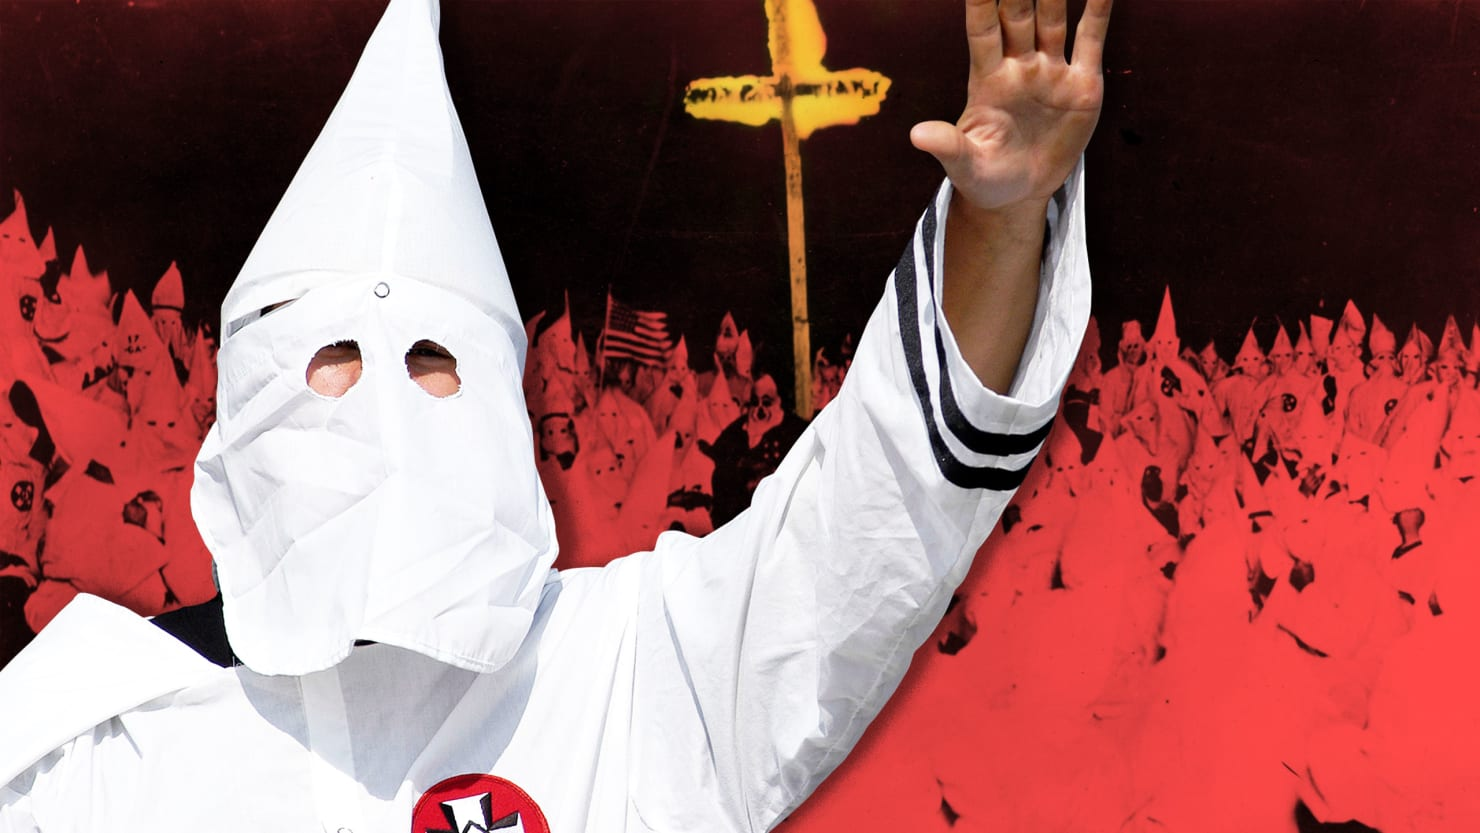 a history of the ku klux klan a hate group in the united states of america The hacktivist group anonymous on thursday released of a list of at least 1,000 names of alleged ku klux klan membersexperts who track hate group activity in the united states said the focus on the kkk ignores other, more powerful white supremacist groups operating around the country.